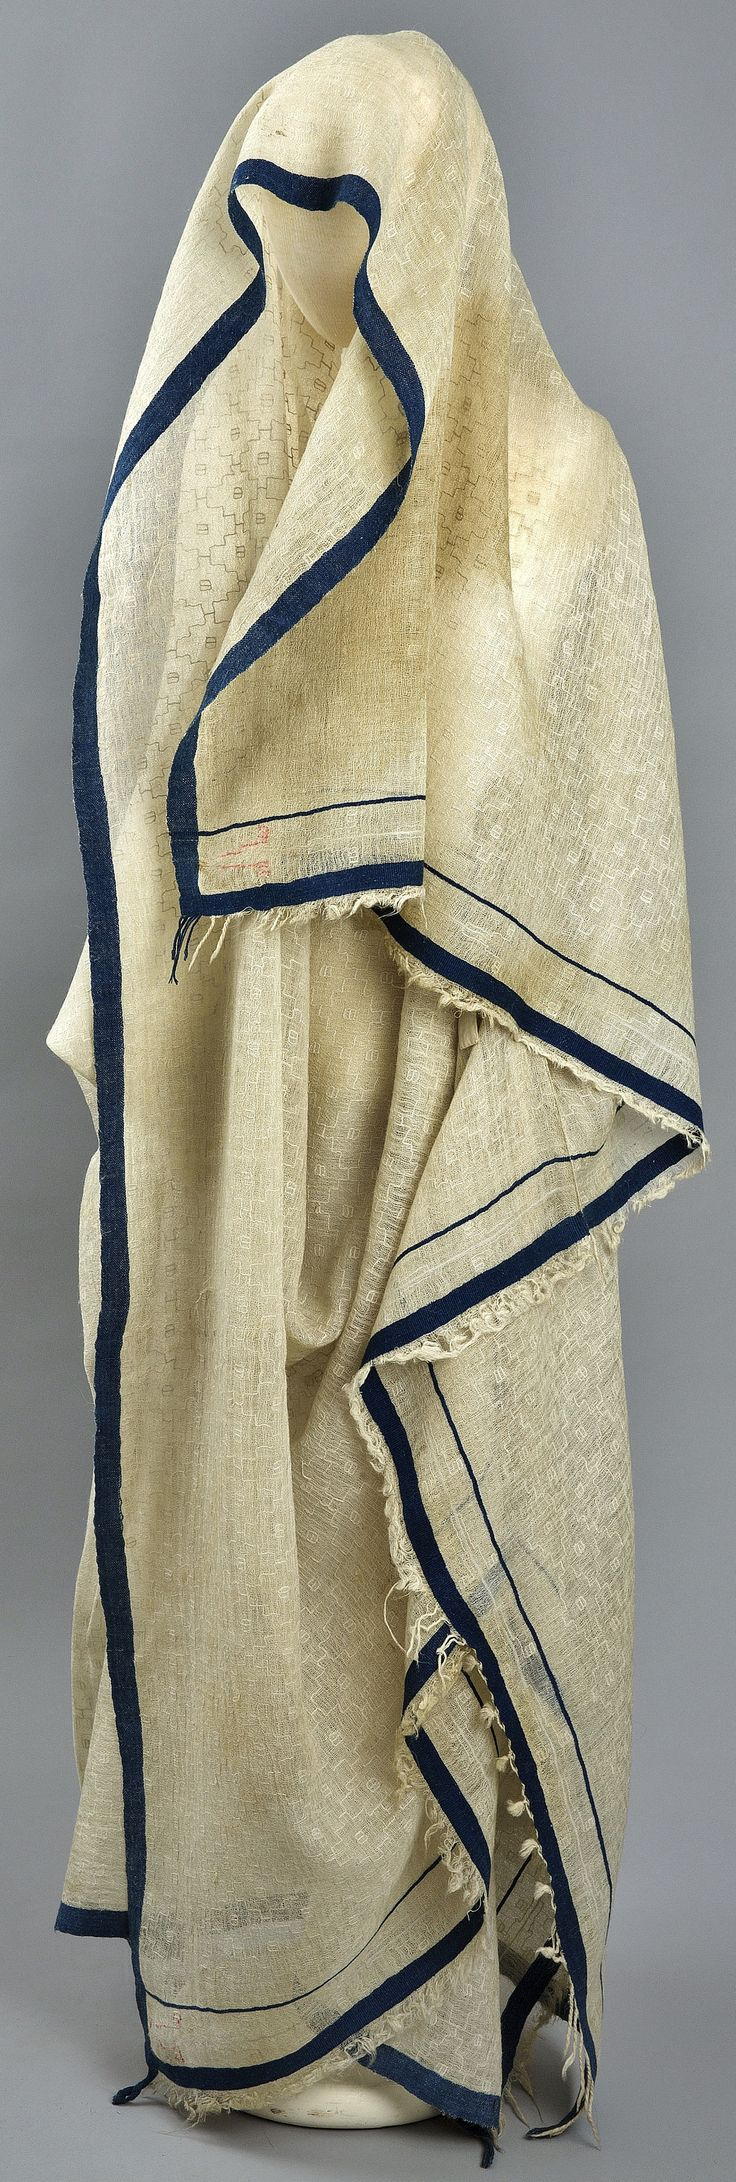 Late-Ottoman street-wear from Erzurum/Karin. End of 19th century. Called 'çarşaf' (blanket). Made of fine wool. Originating from an Armenian household. (The Russian Museum of Ethnography, St.Petersburg).